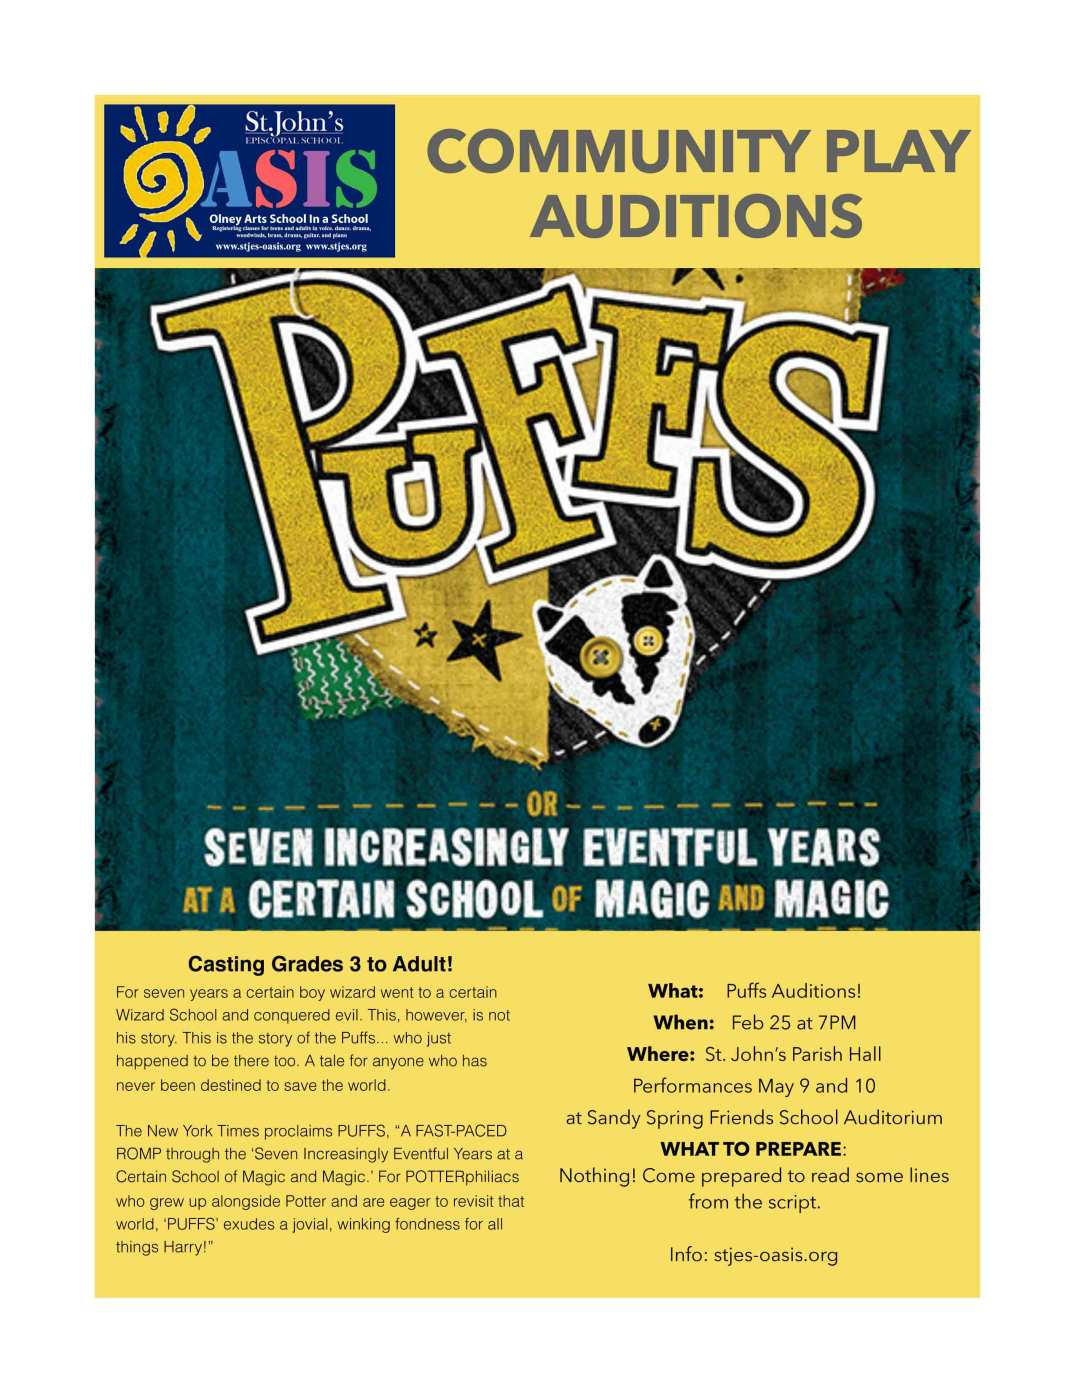 Community-Play-Auditions-PUFFS